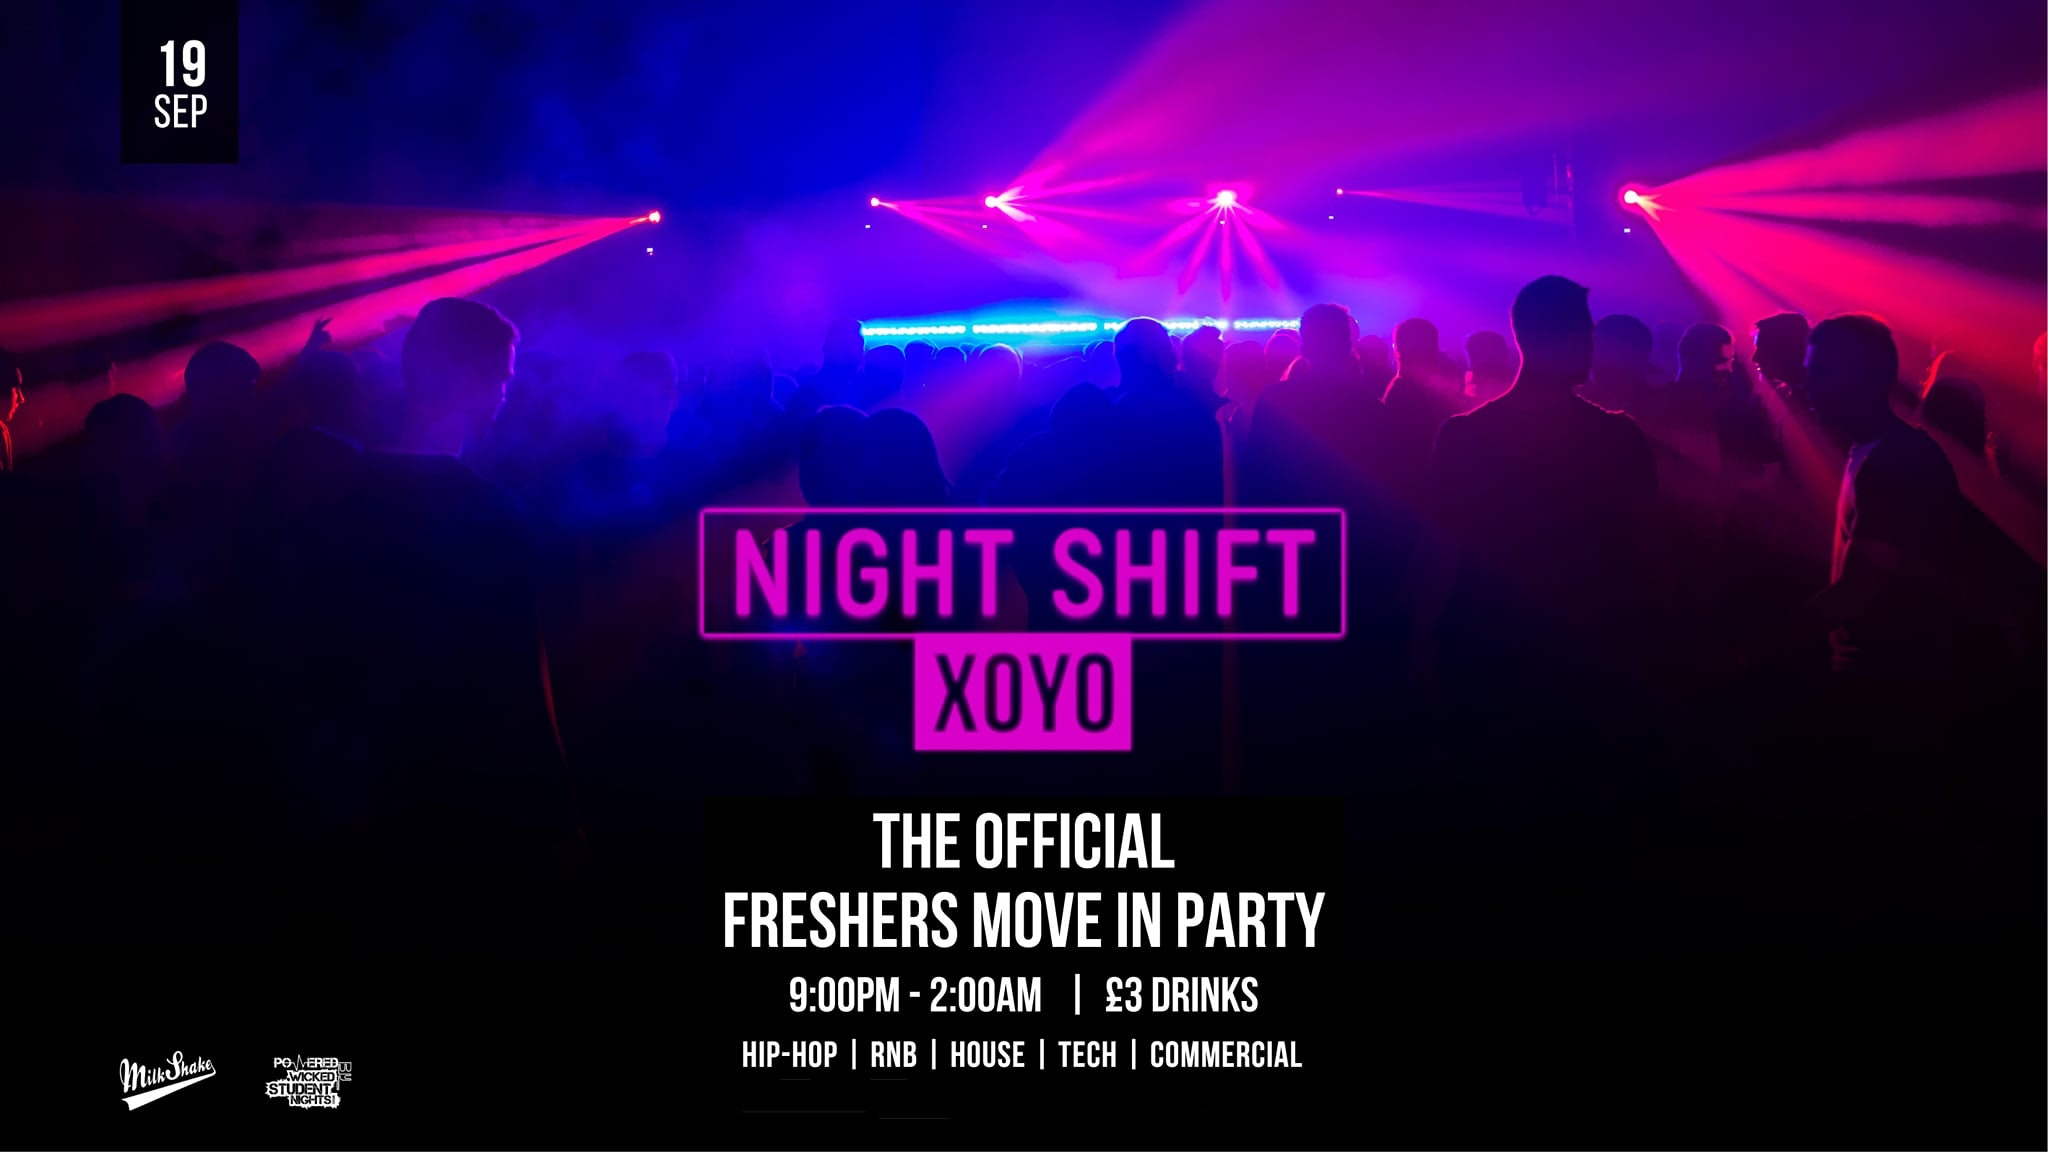 The Night Shift And Official Freshrs Moving In Party💥 | Live From XOYO London